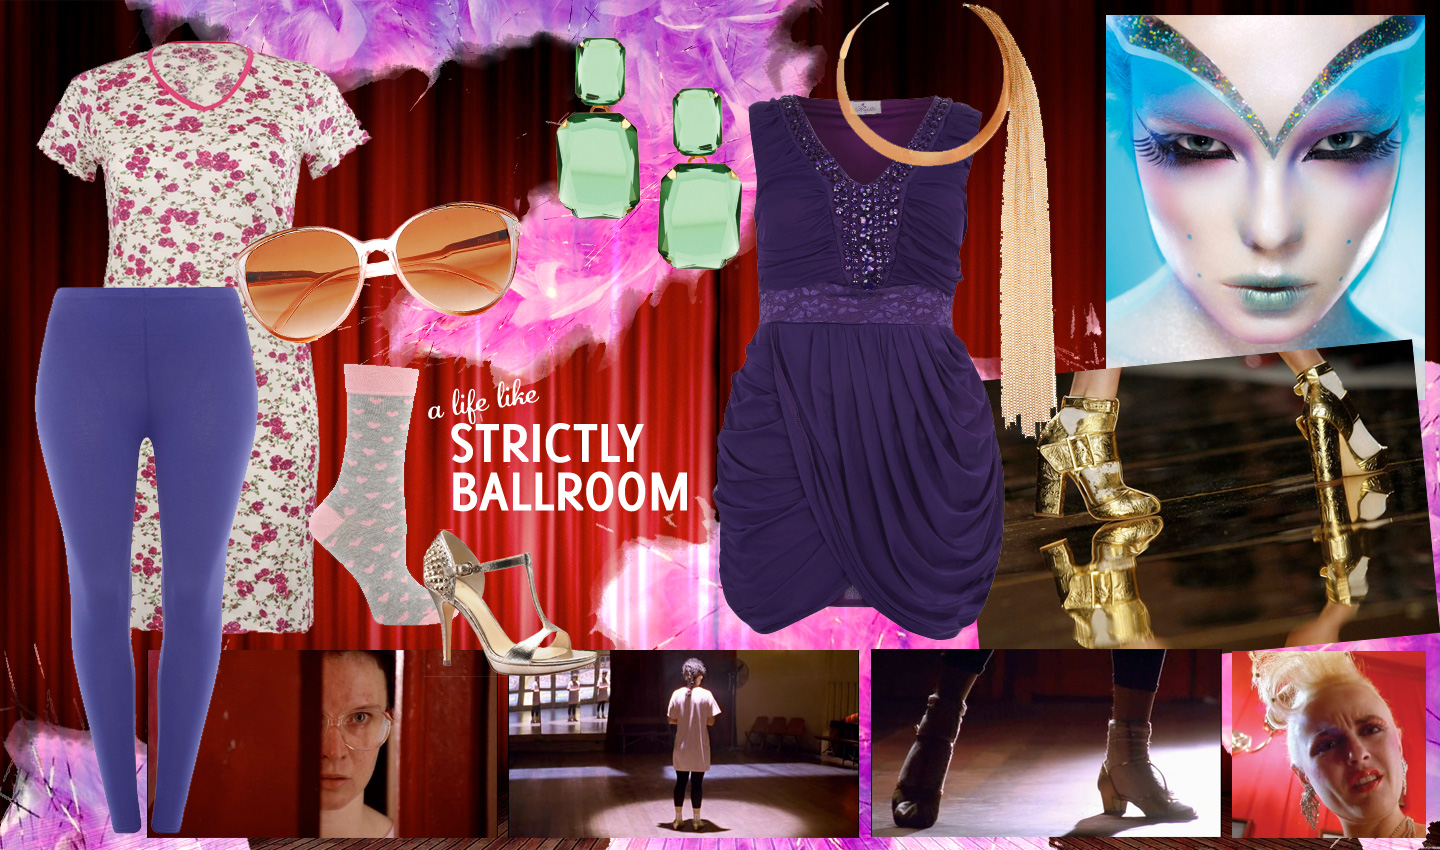 A life like Strictly Ballroom